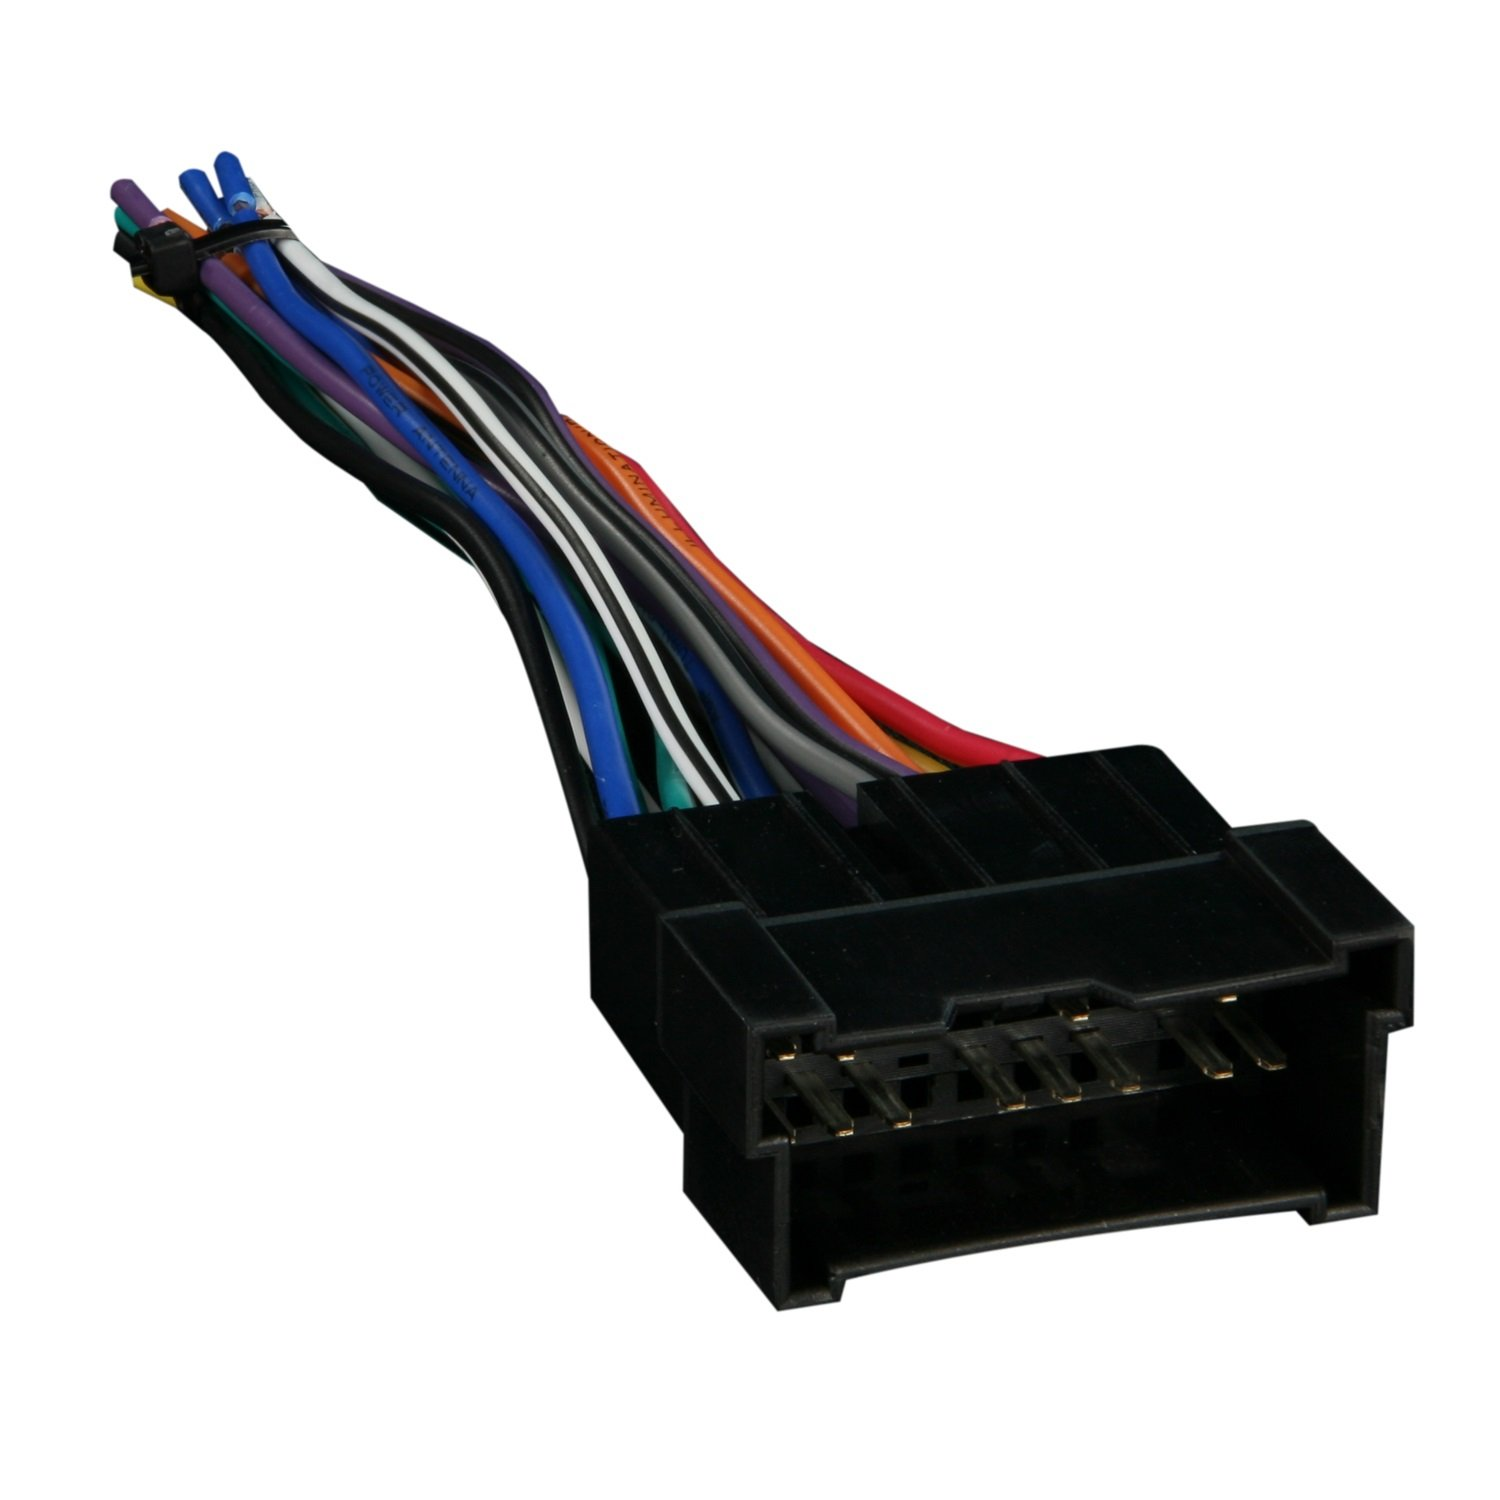 617yeBmOquL._SL1500_ amazon com metra 70 7301 radio wiring harness for hyundai kia 99 Wire Harness Assembly at virtualis.co